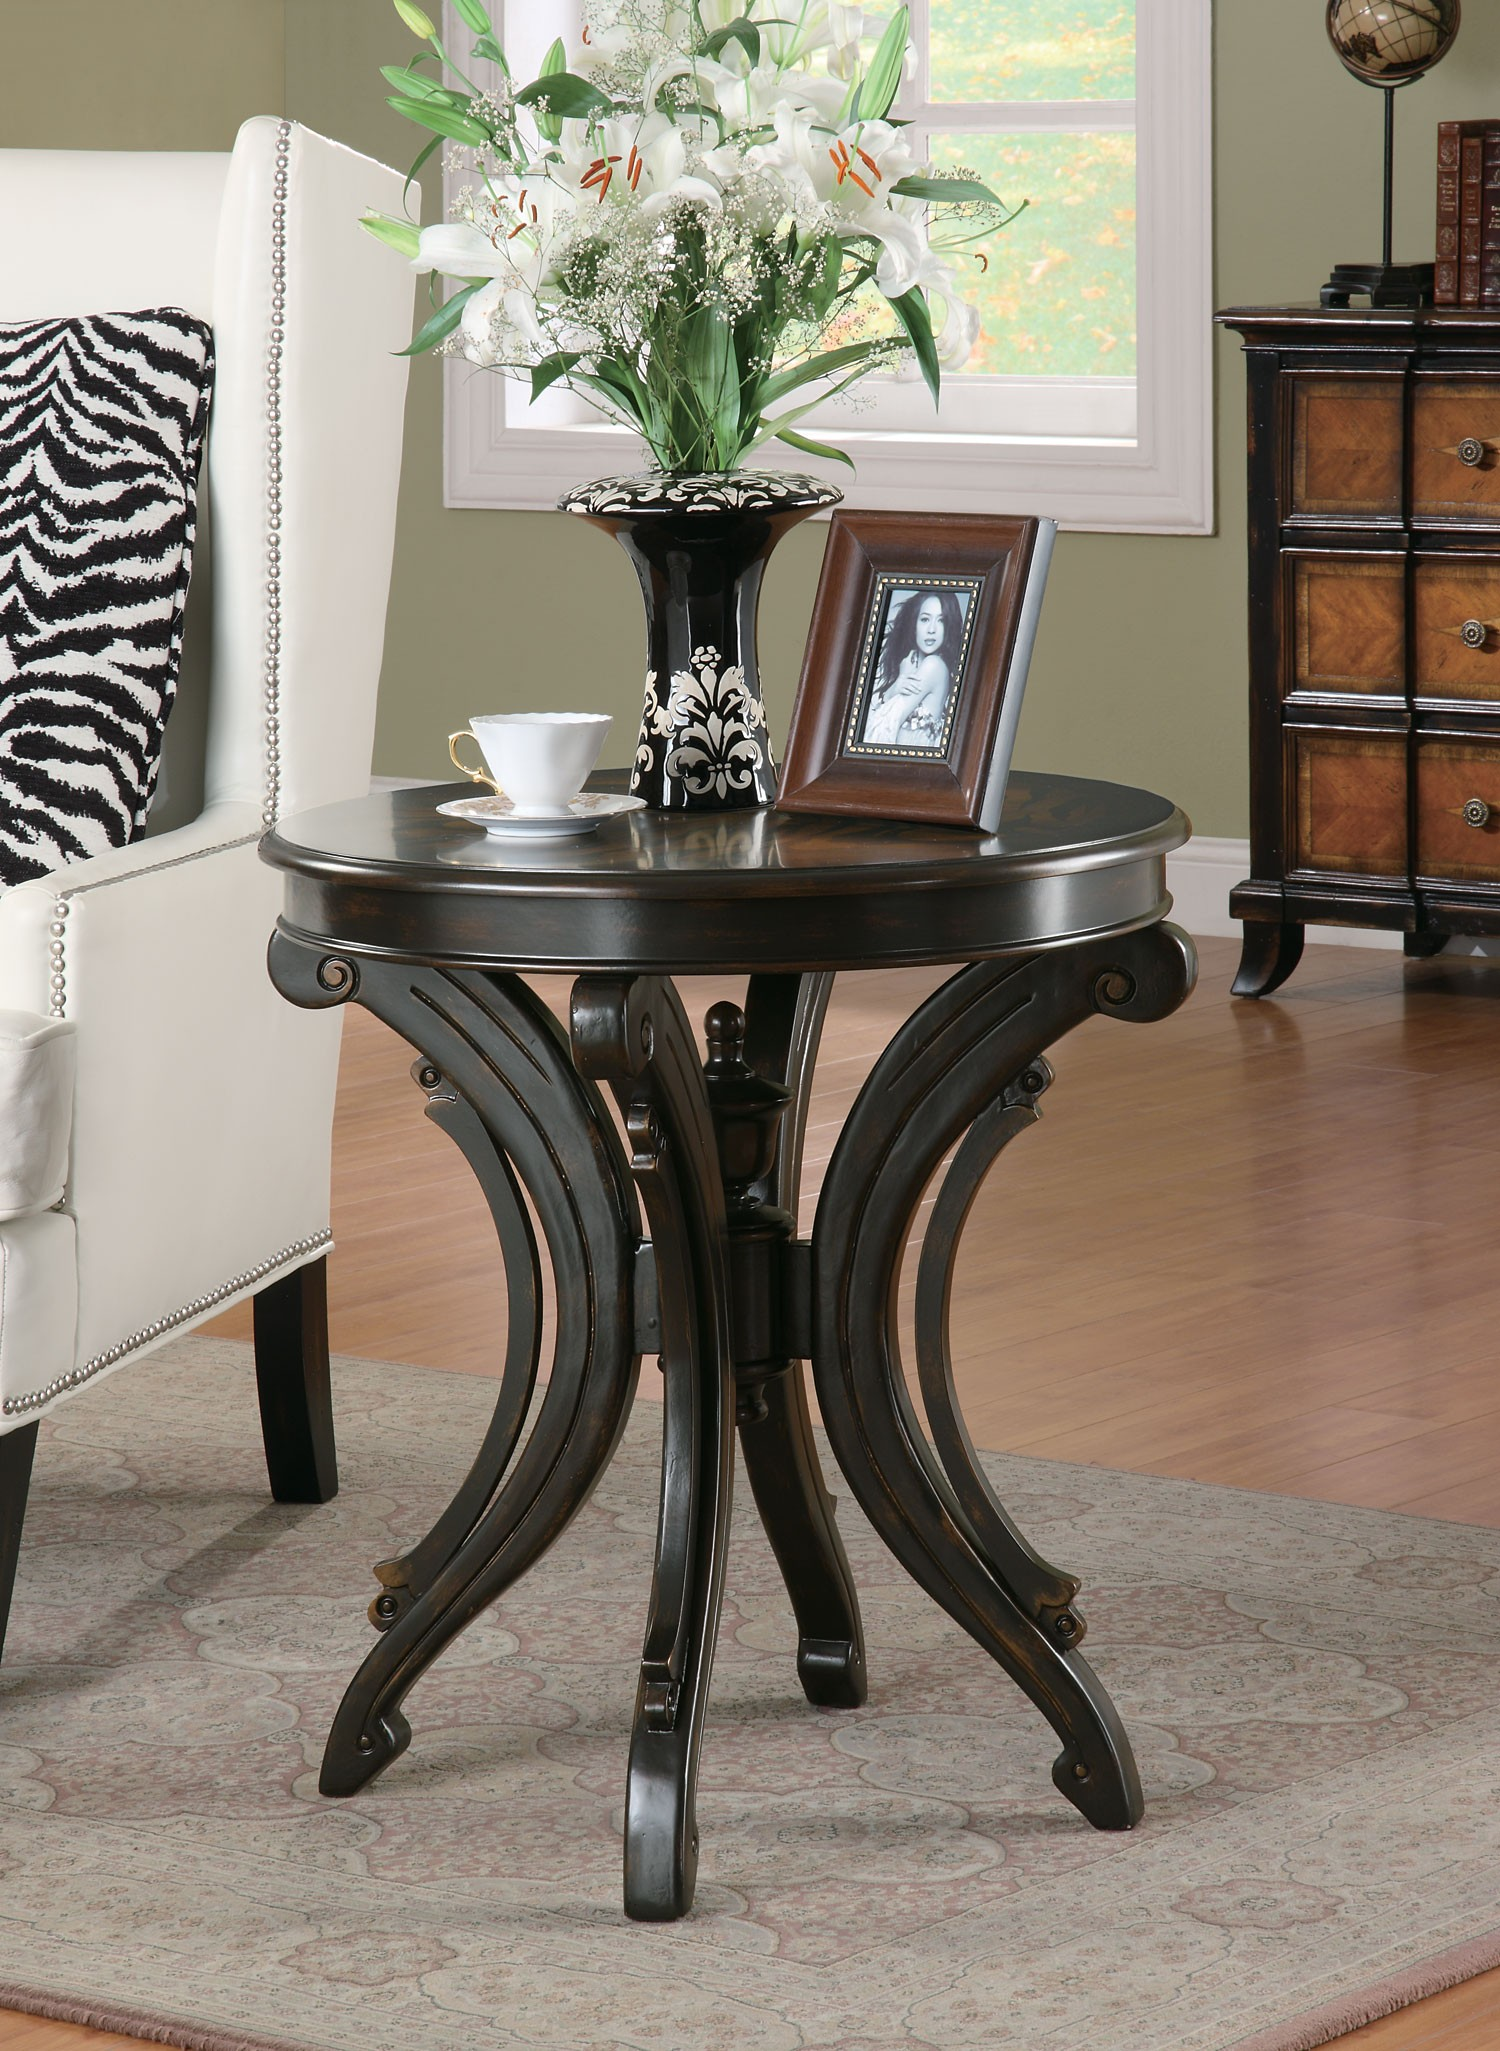 round end table with animal print alexander kat furniture ceramic tables top scrolled base zinc dining half moon shaped laflorn affordable houston rattan under sofa coffee accent